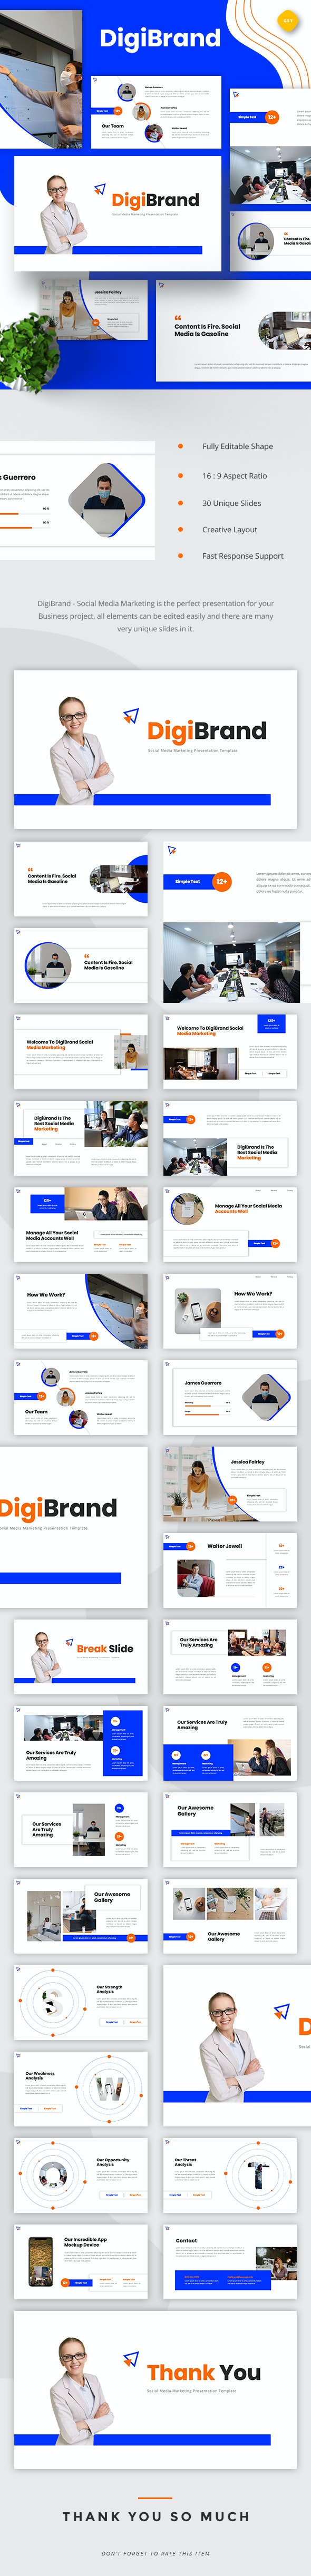 DigiBrand - Social Media Marketing Google Slides - Google Slides Presentation Templates